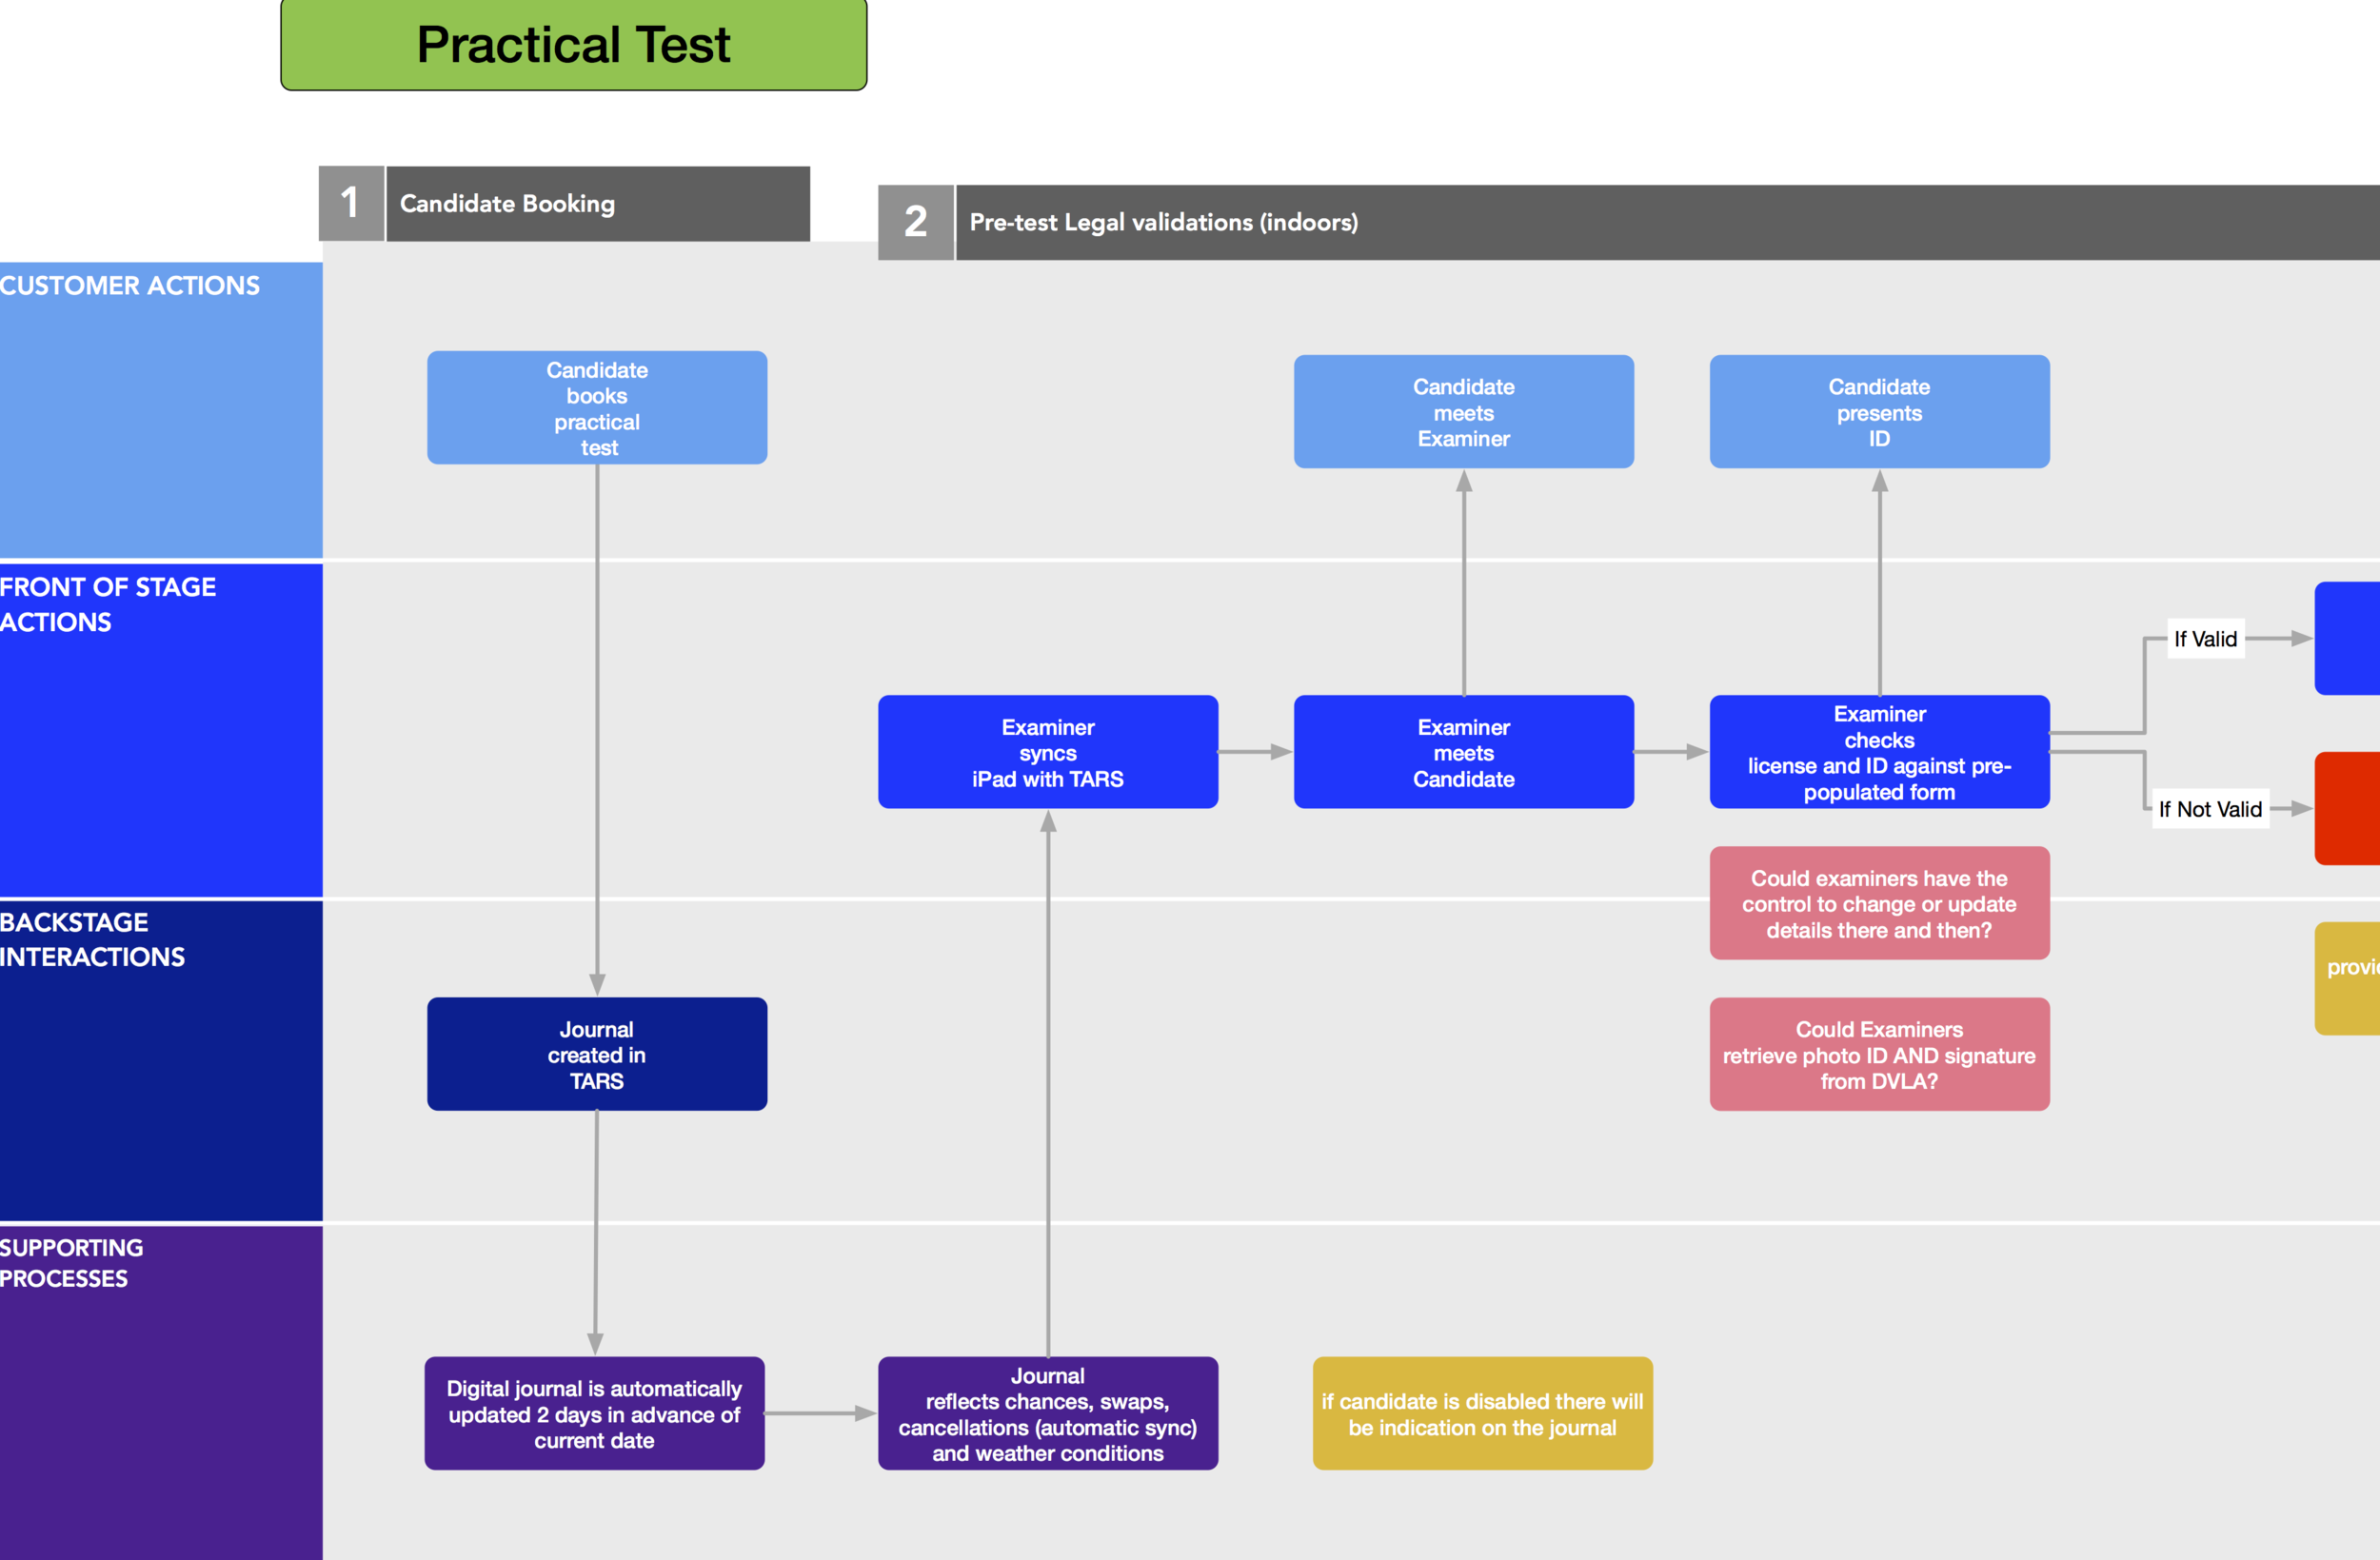 to be user journey of practical driving test